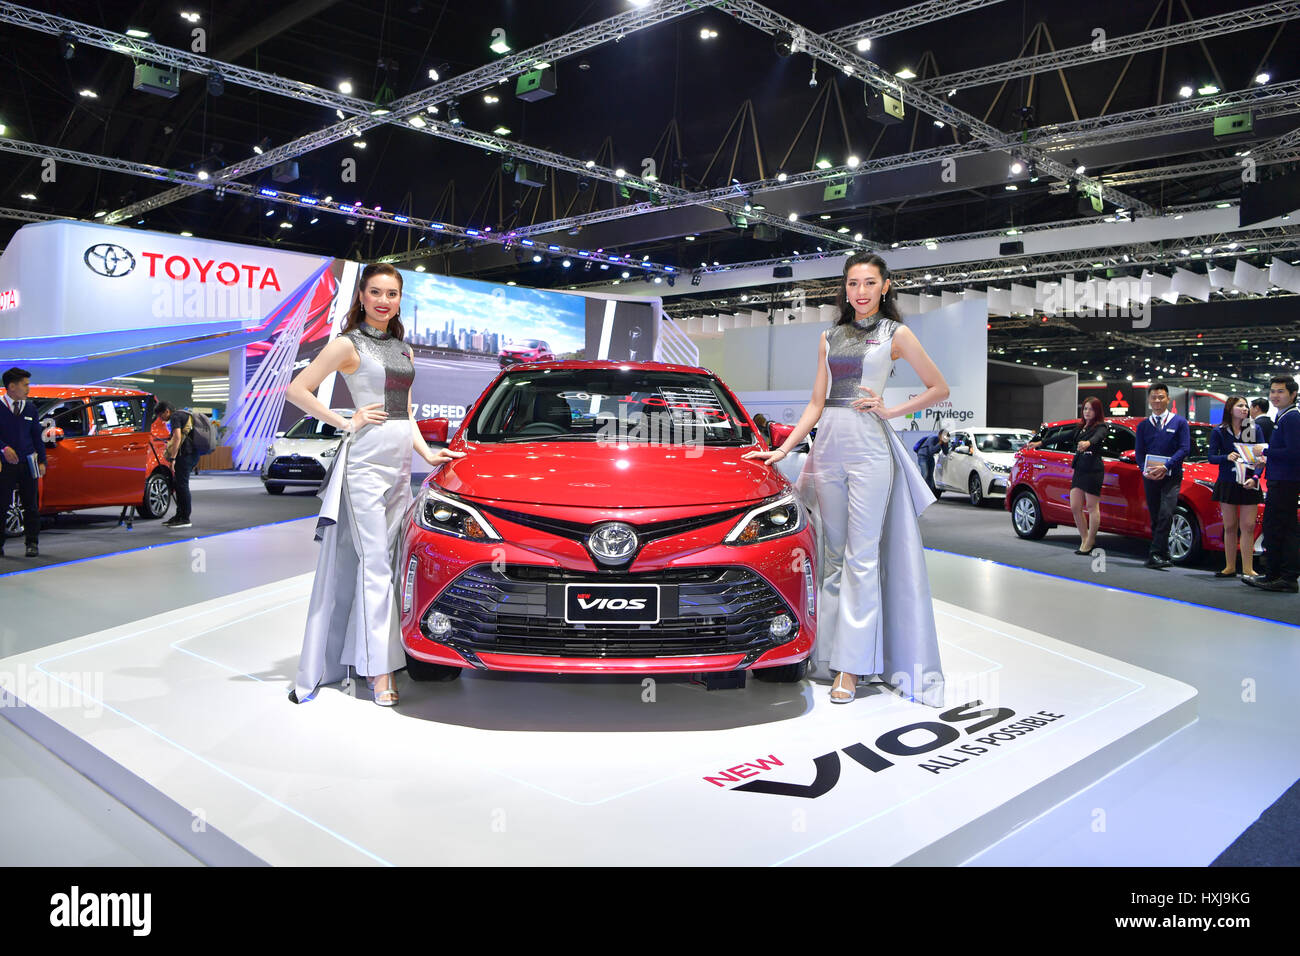 Bangkok, Thailand. 28th Mar, 2017. Toyota New Vios Car On Display At The  38th Bangkok International Thailand Motor Show 2017 On March 28, 2017  Nonthaburi, ...